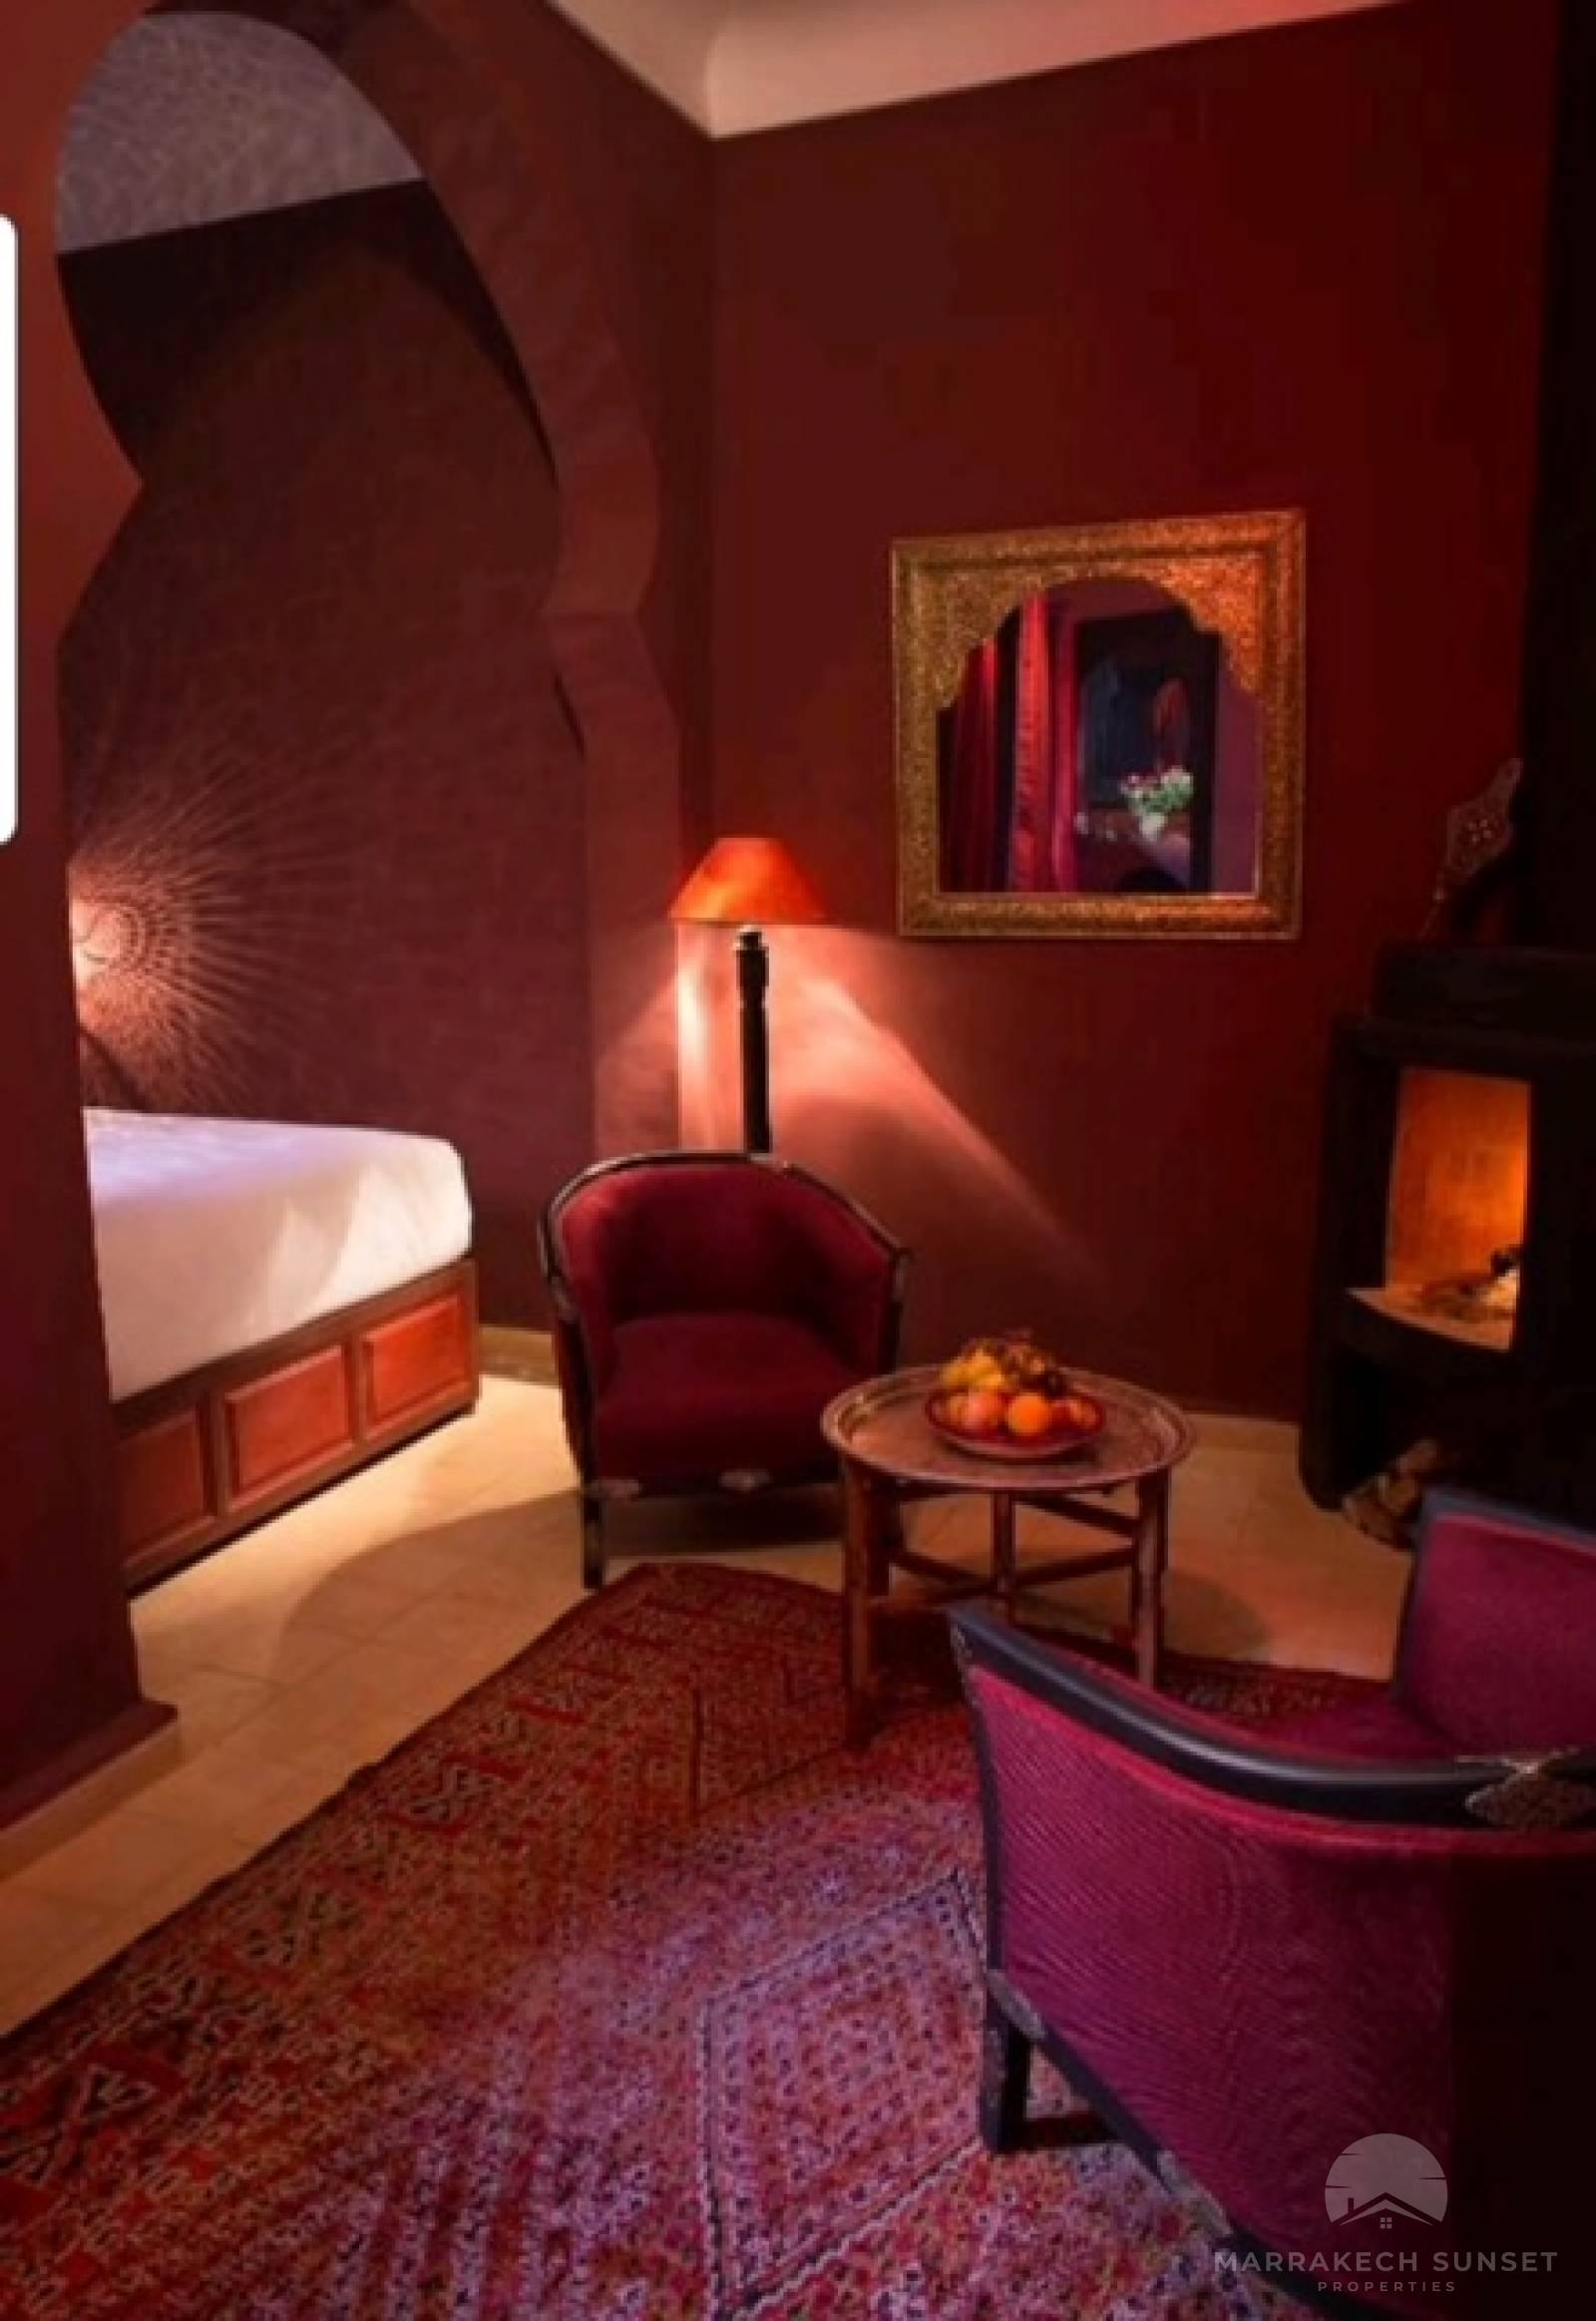 Authentic 9 bedroom Riad with prime location for sale in Marrakech